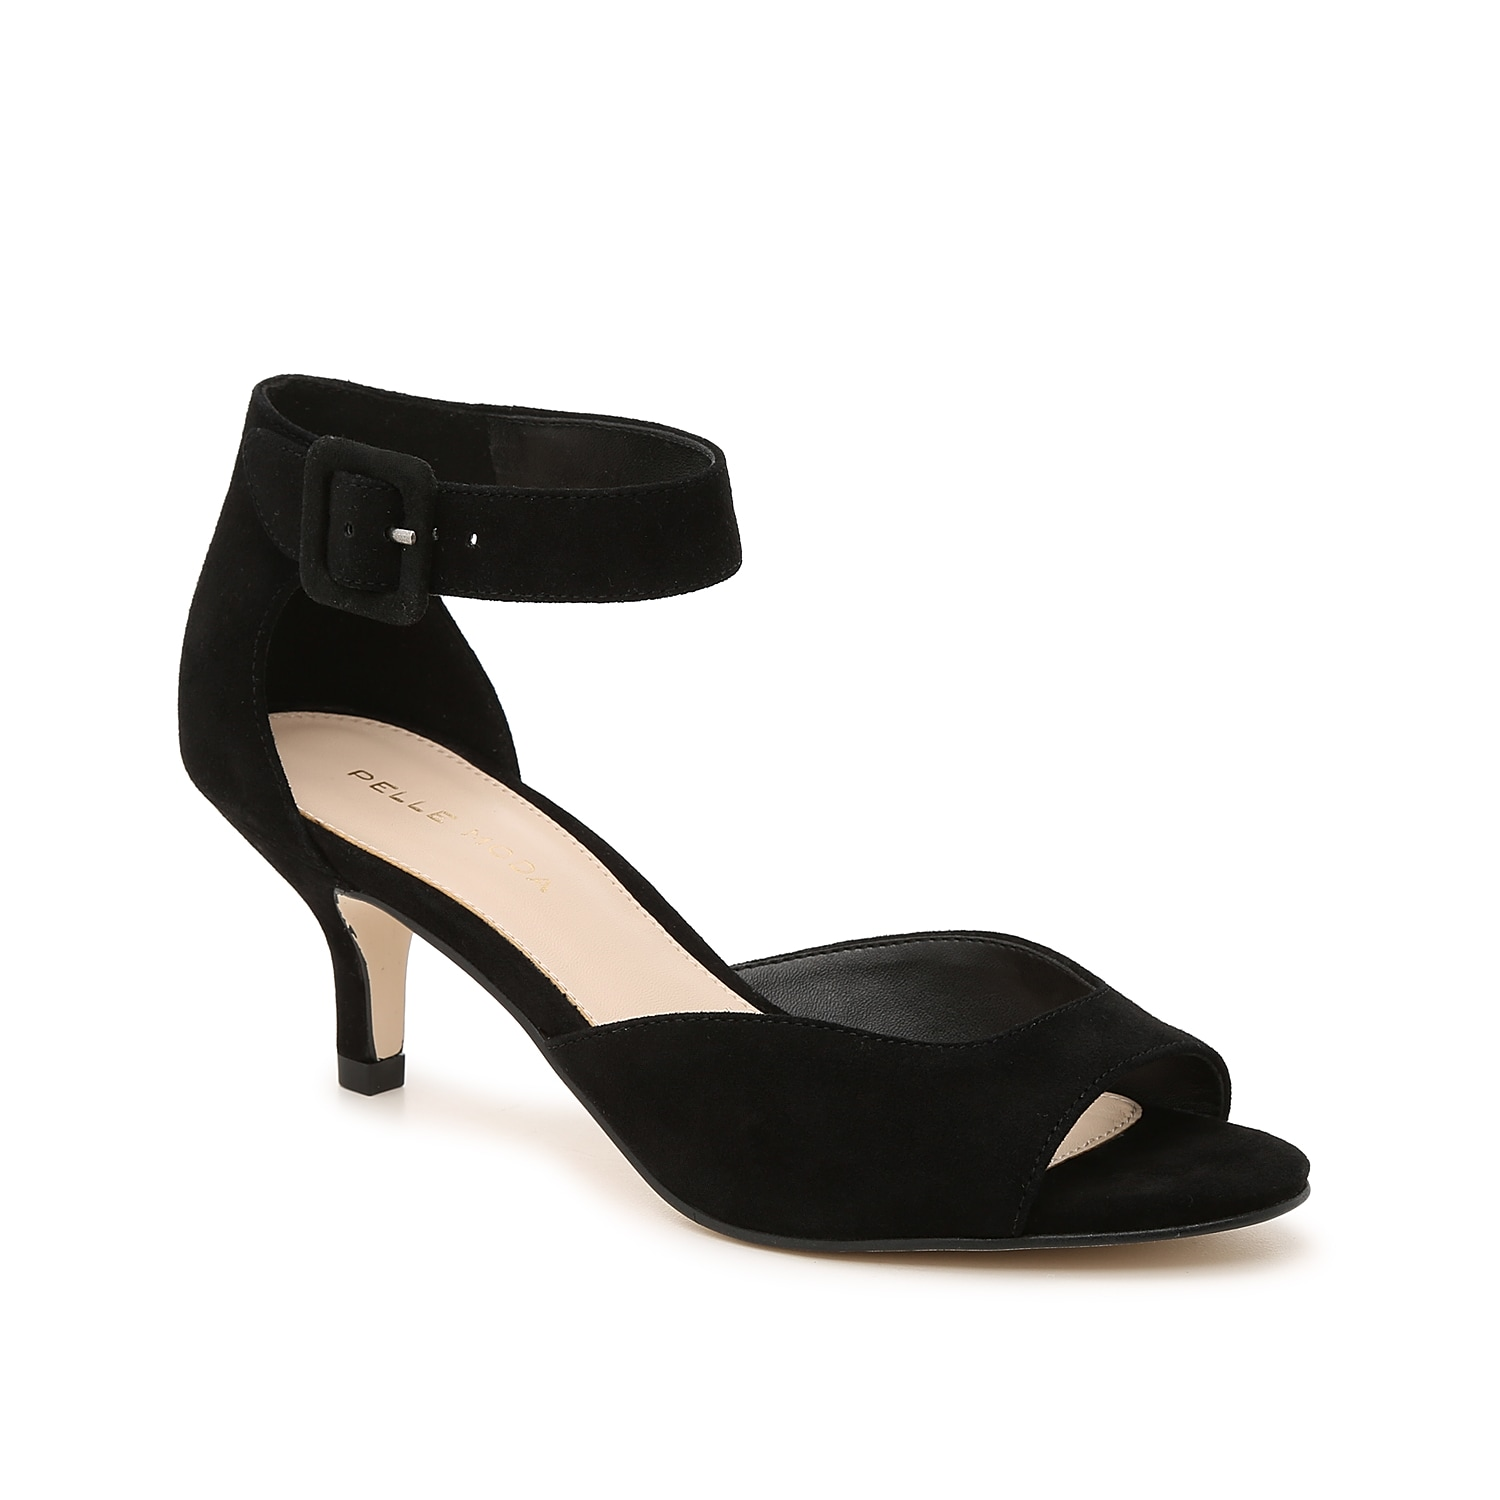 Classic and sophisticated, the Della sandal from Pelle Moda is versatile enough for nearly any outfit. This two-piece pair features a kitten heel and bold buckle accent for modern appeal.